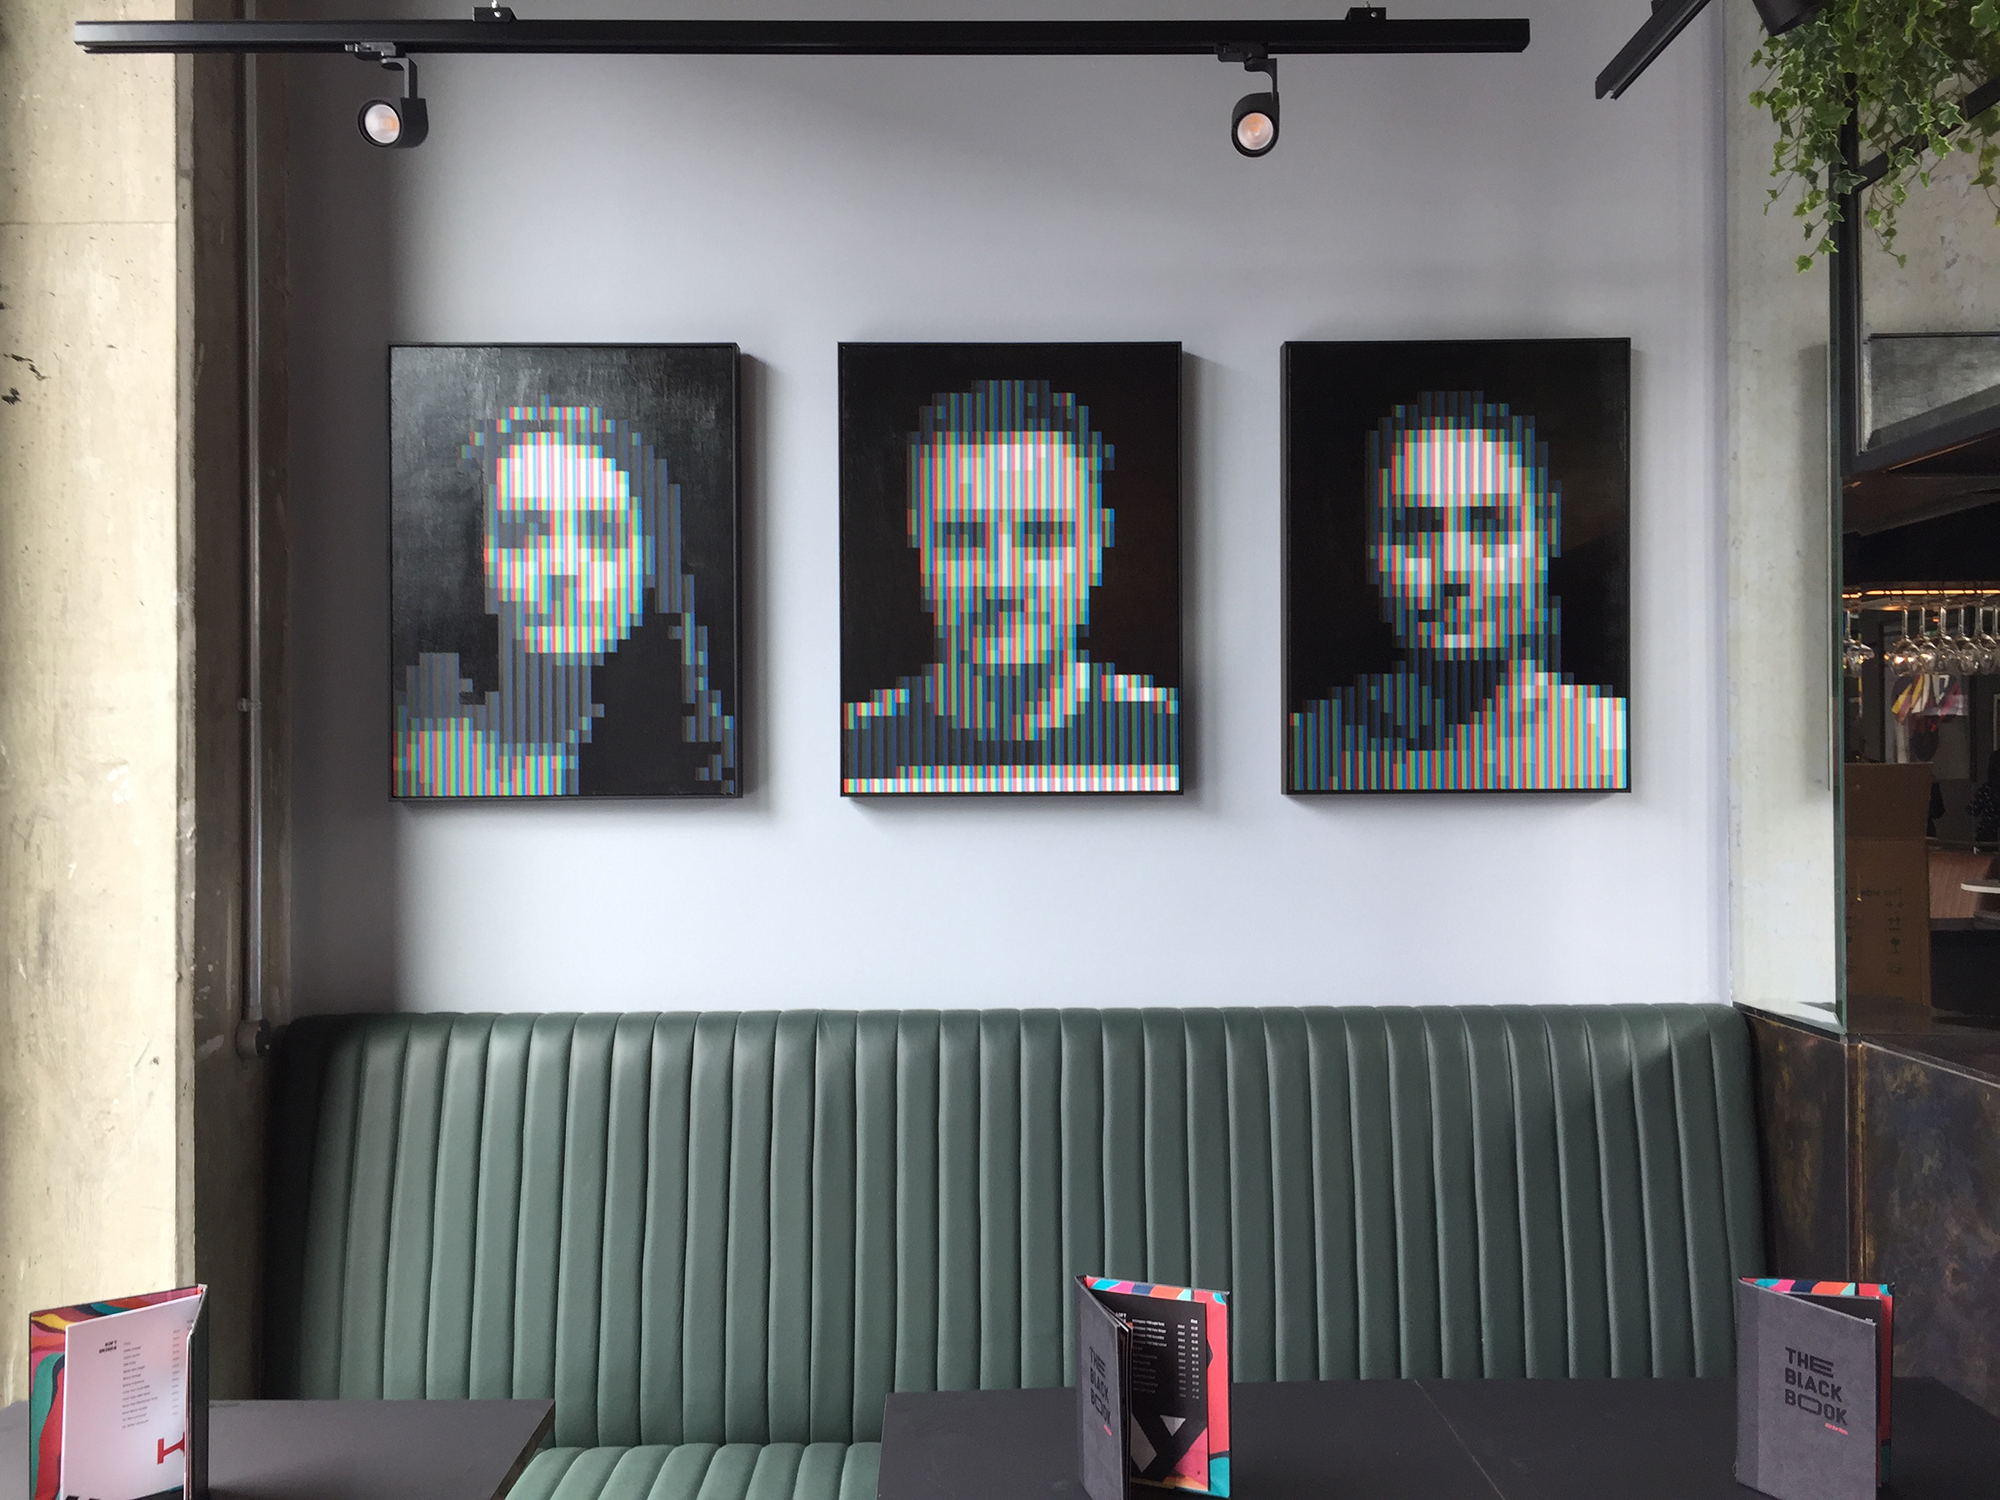 Left to Right: 'Spp_01', 'Spp_02', 'Spp_03', 2019, Spray Paint on Canvas, 60 x 80 cm, The Hendrick.